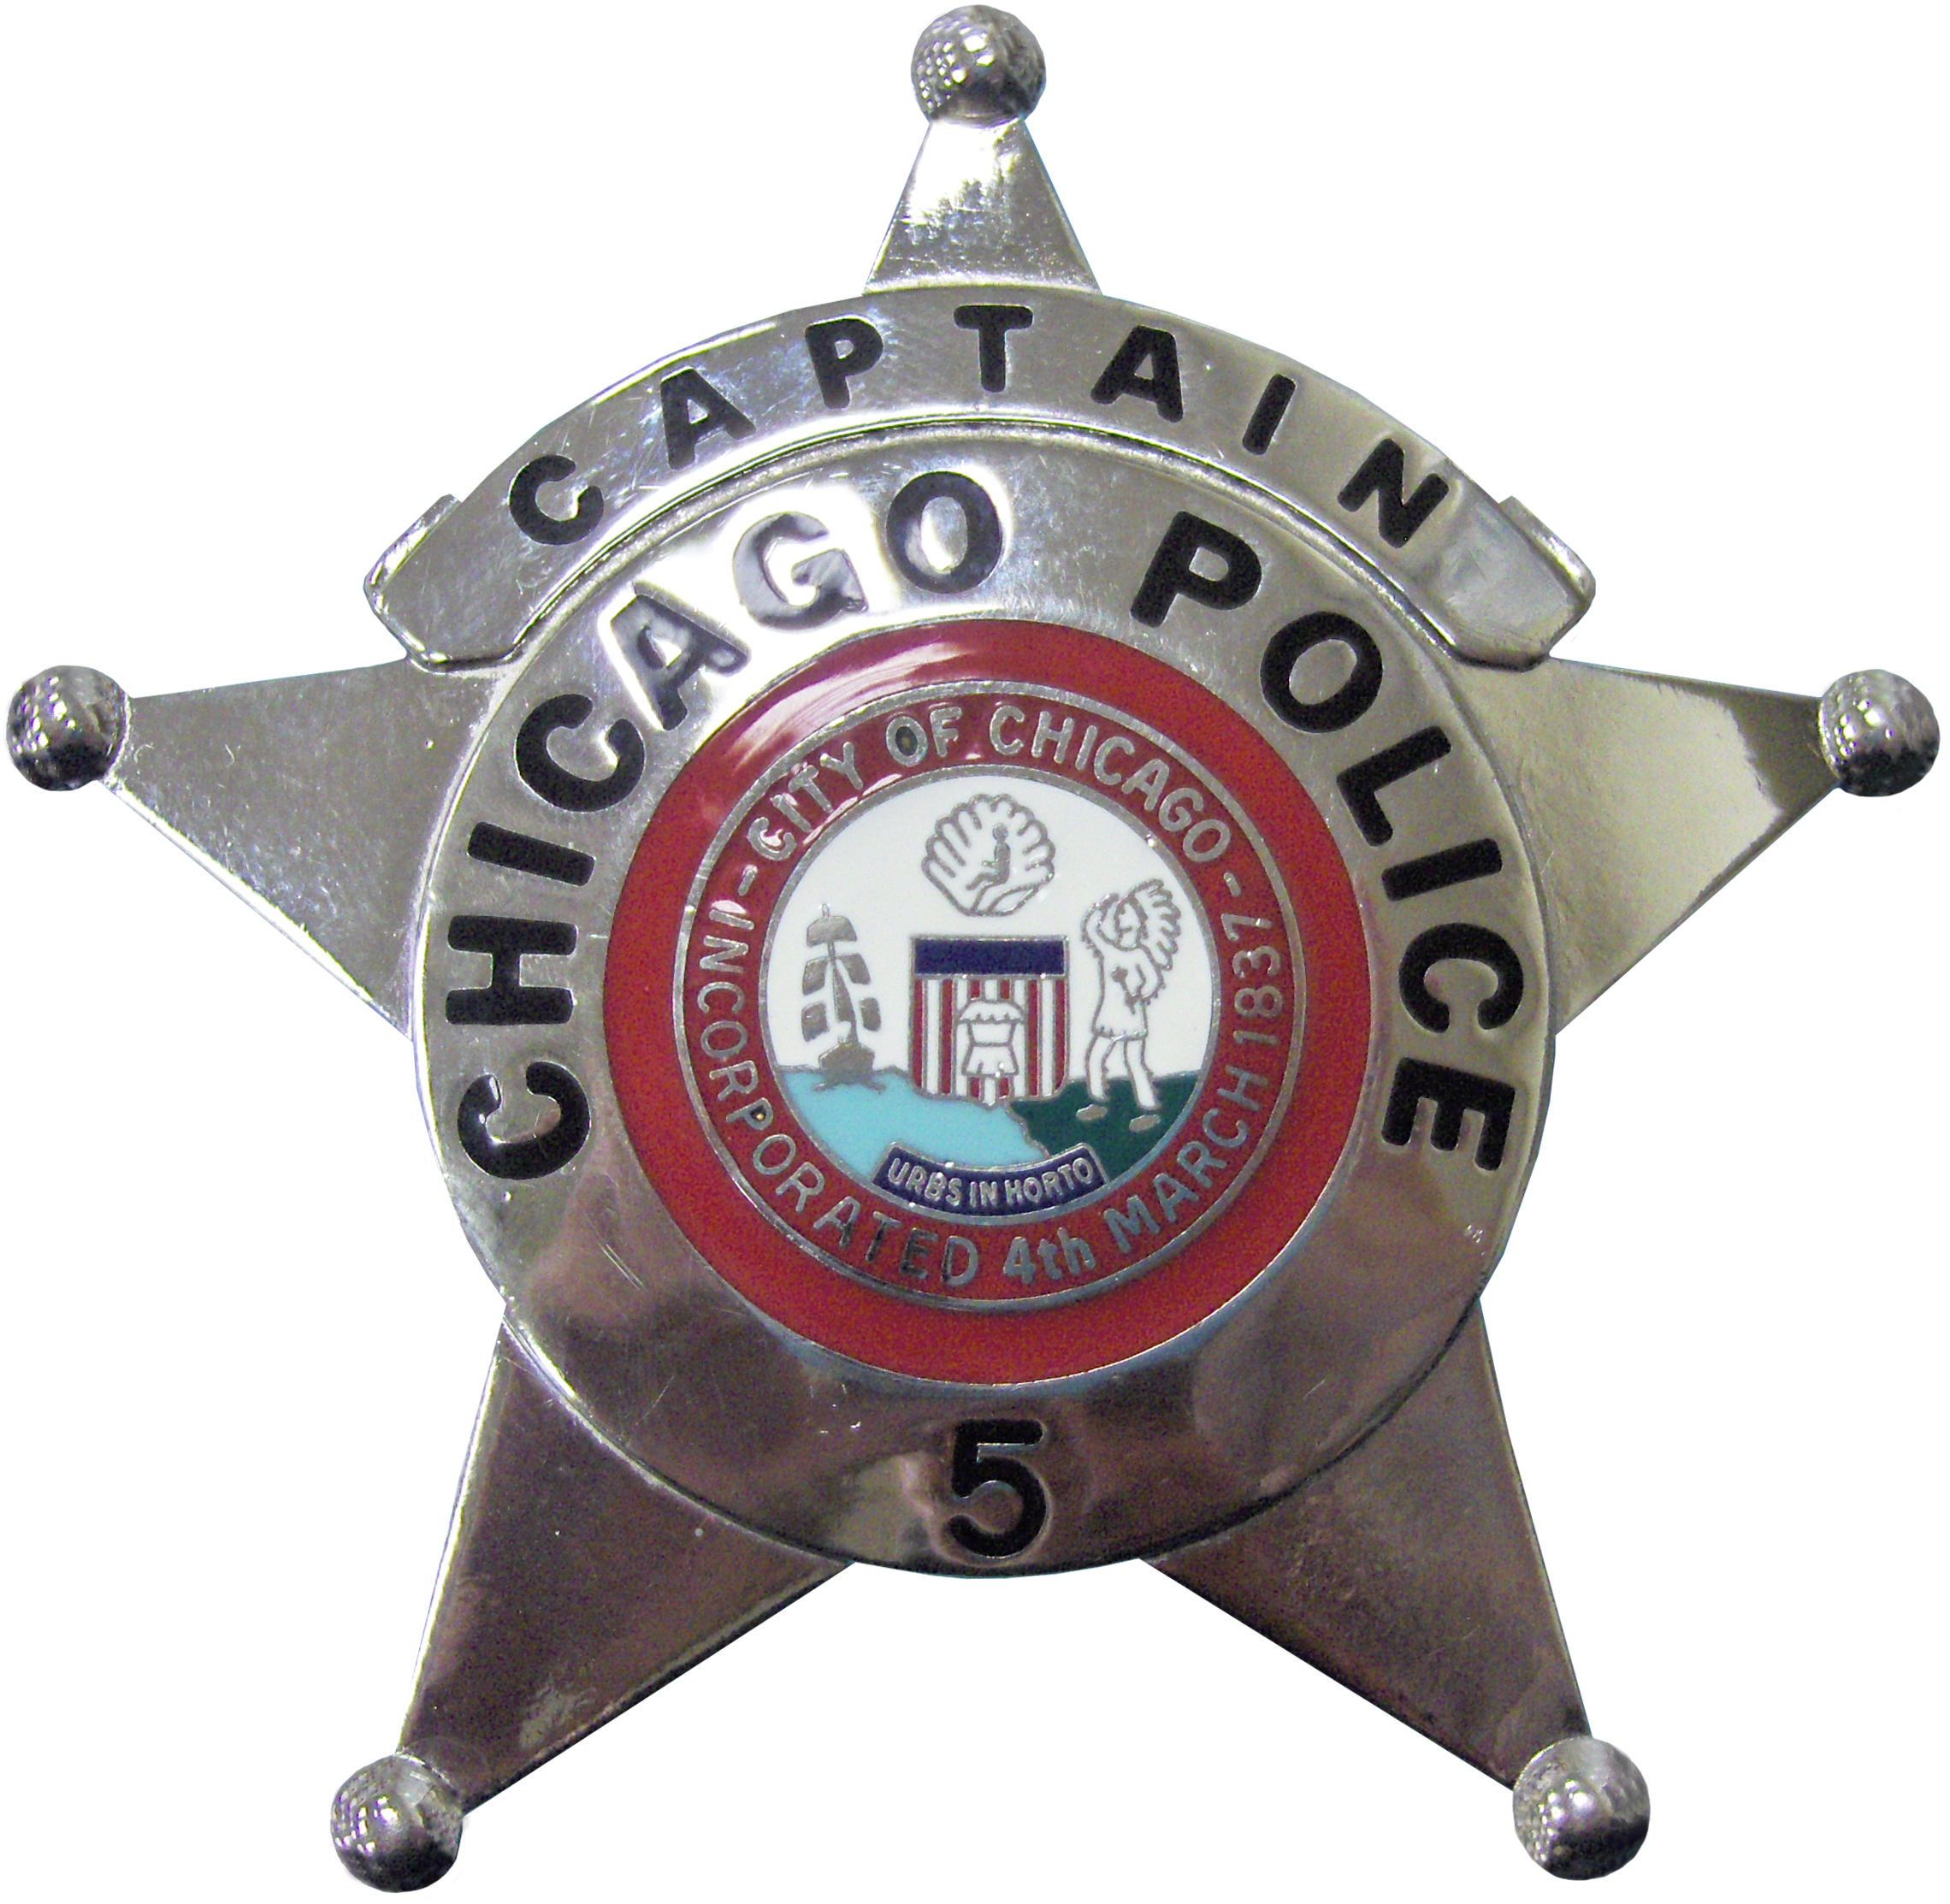 Chicago pd stars dating